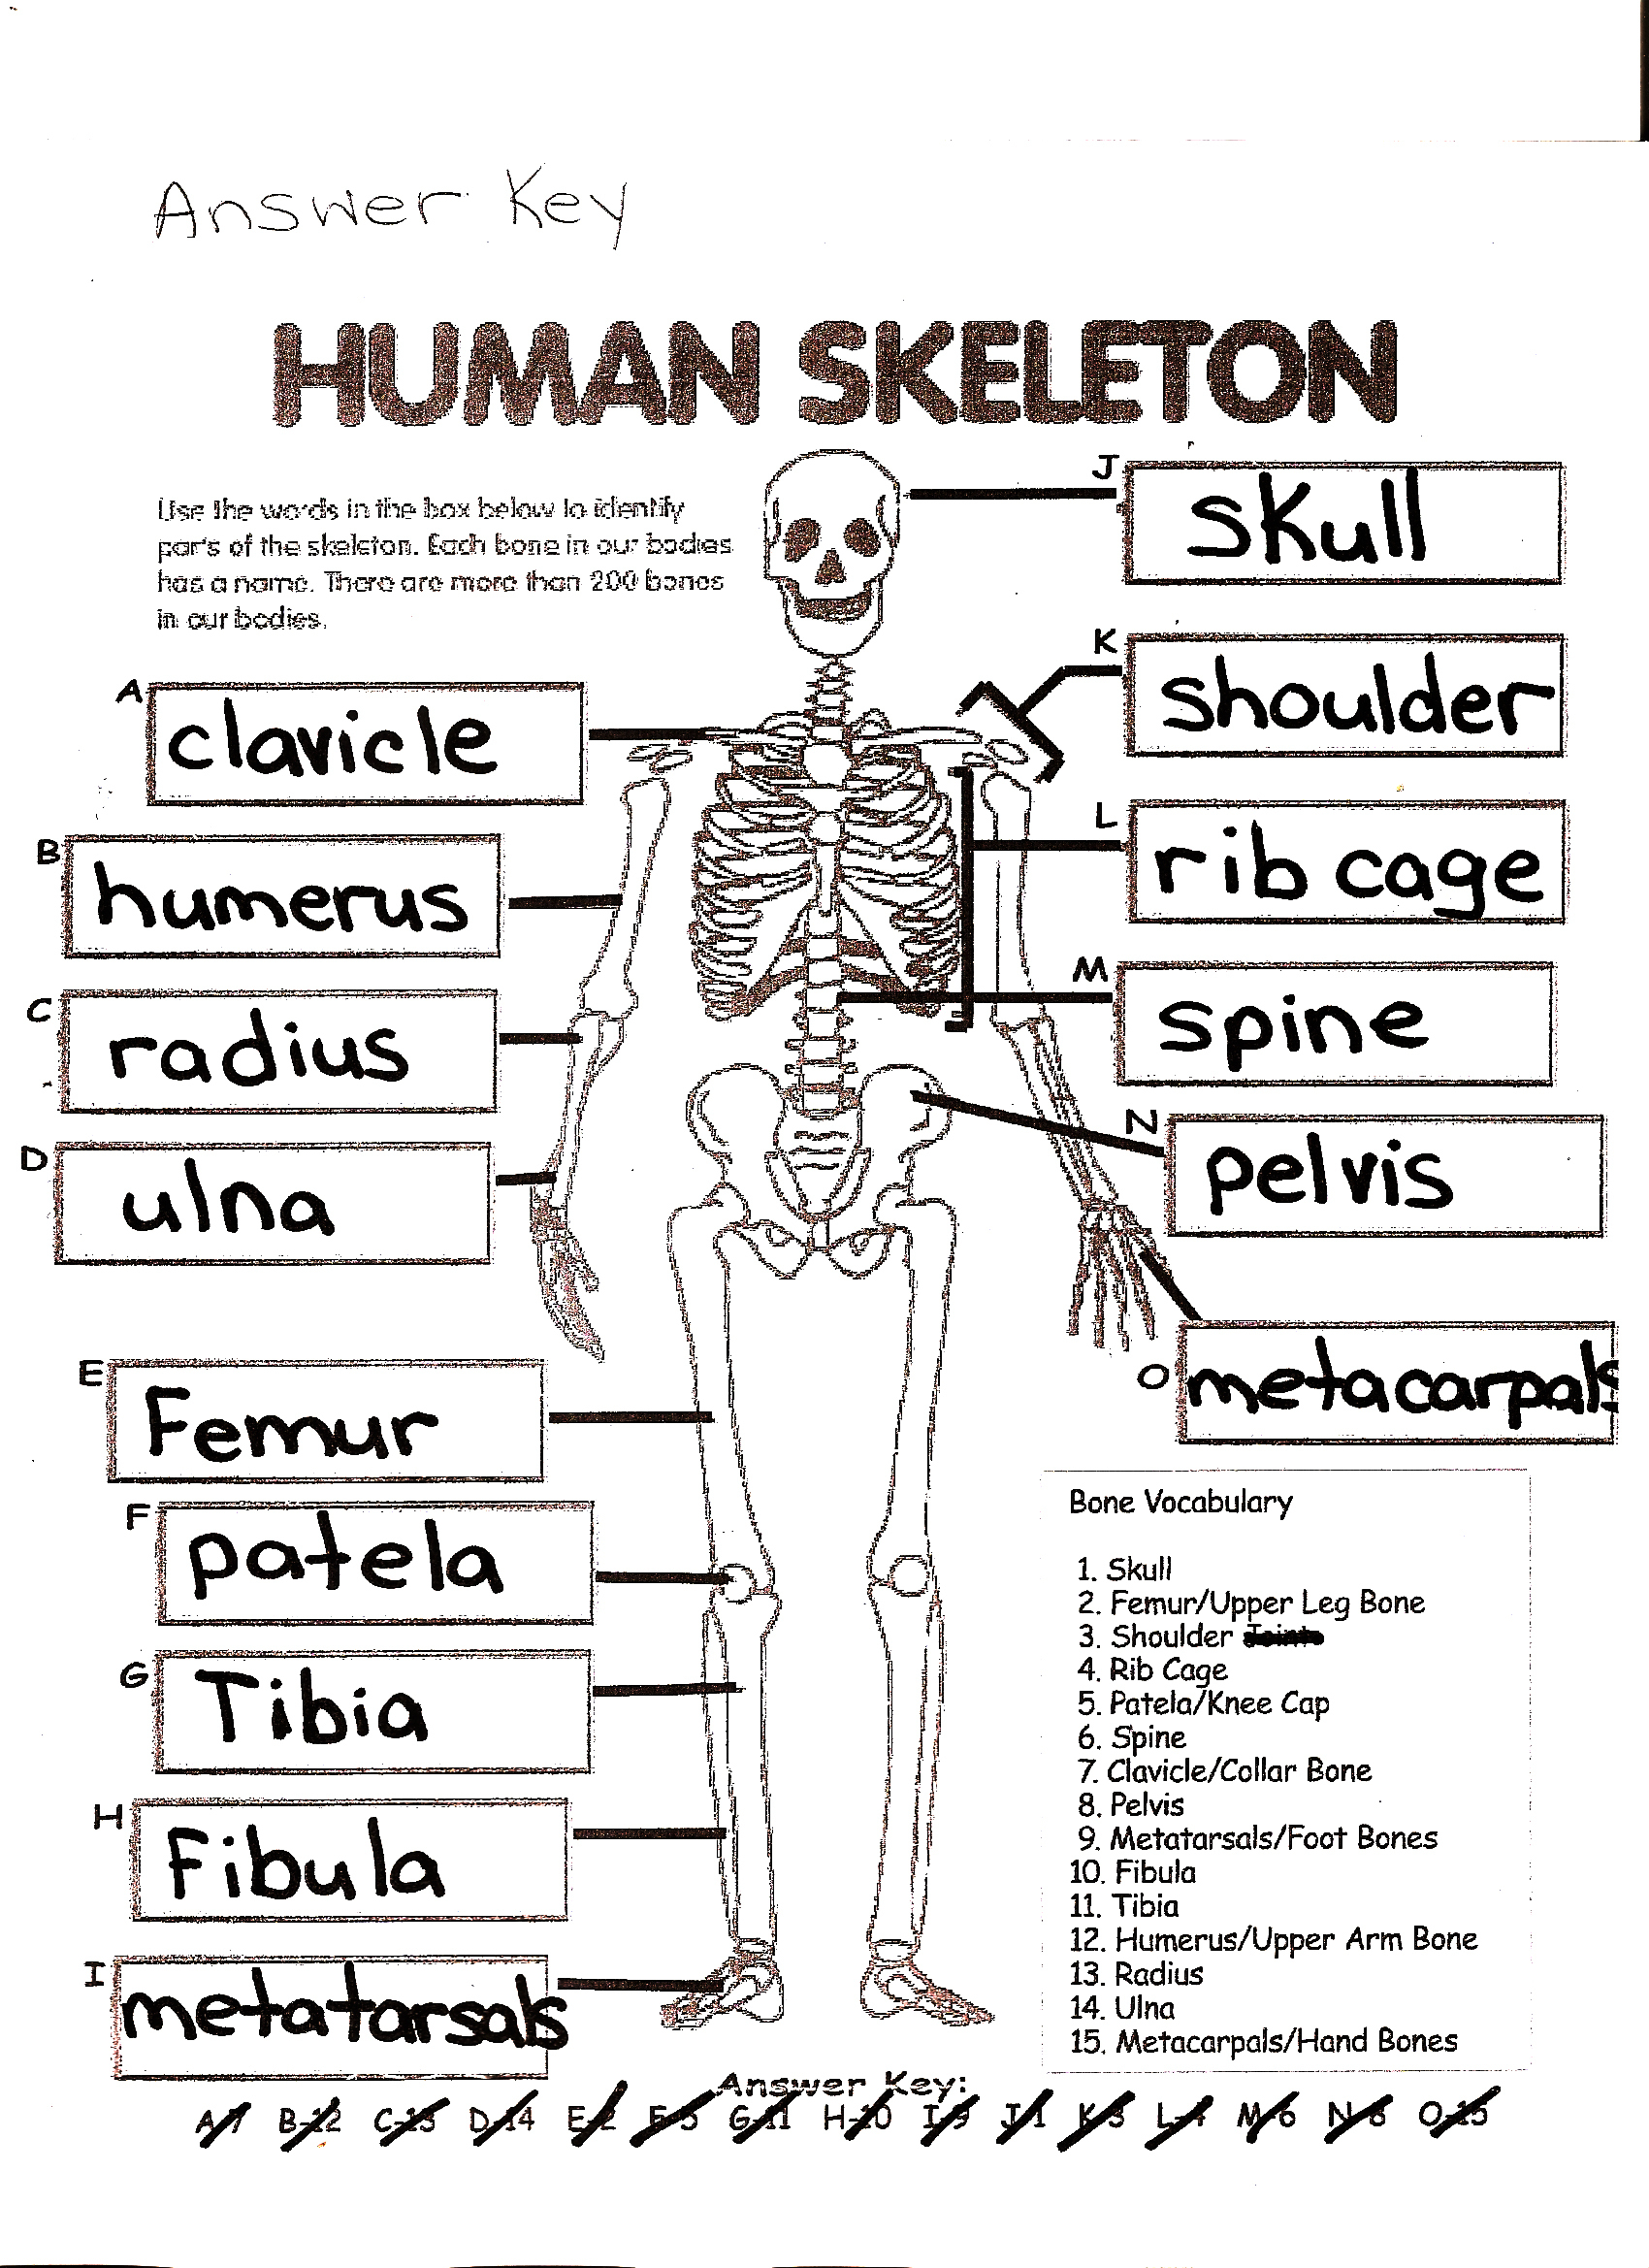 Skeletal System Crossword Puzzle Answers | Healthy Hesongbai - Printable Skeletal System Crossword Puzzle